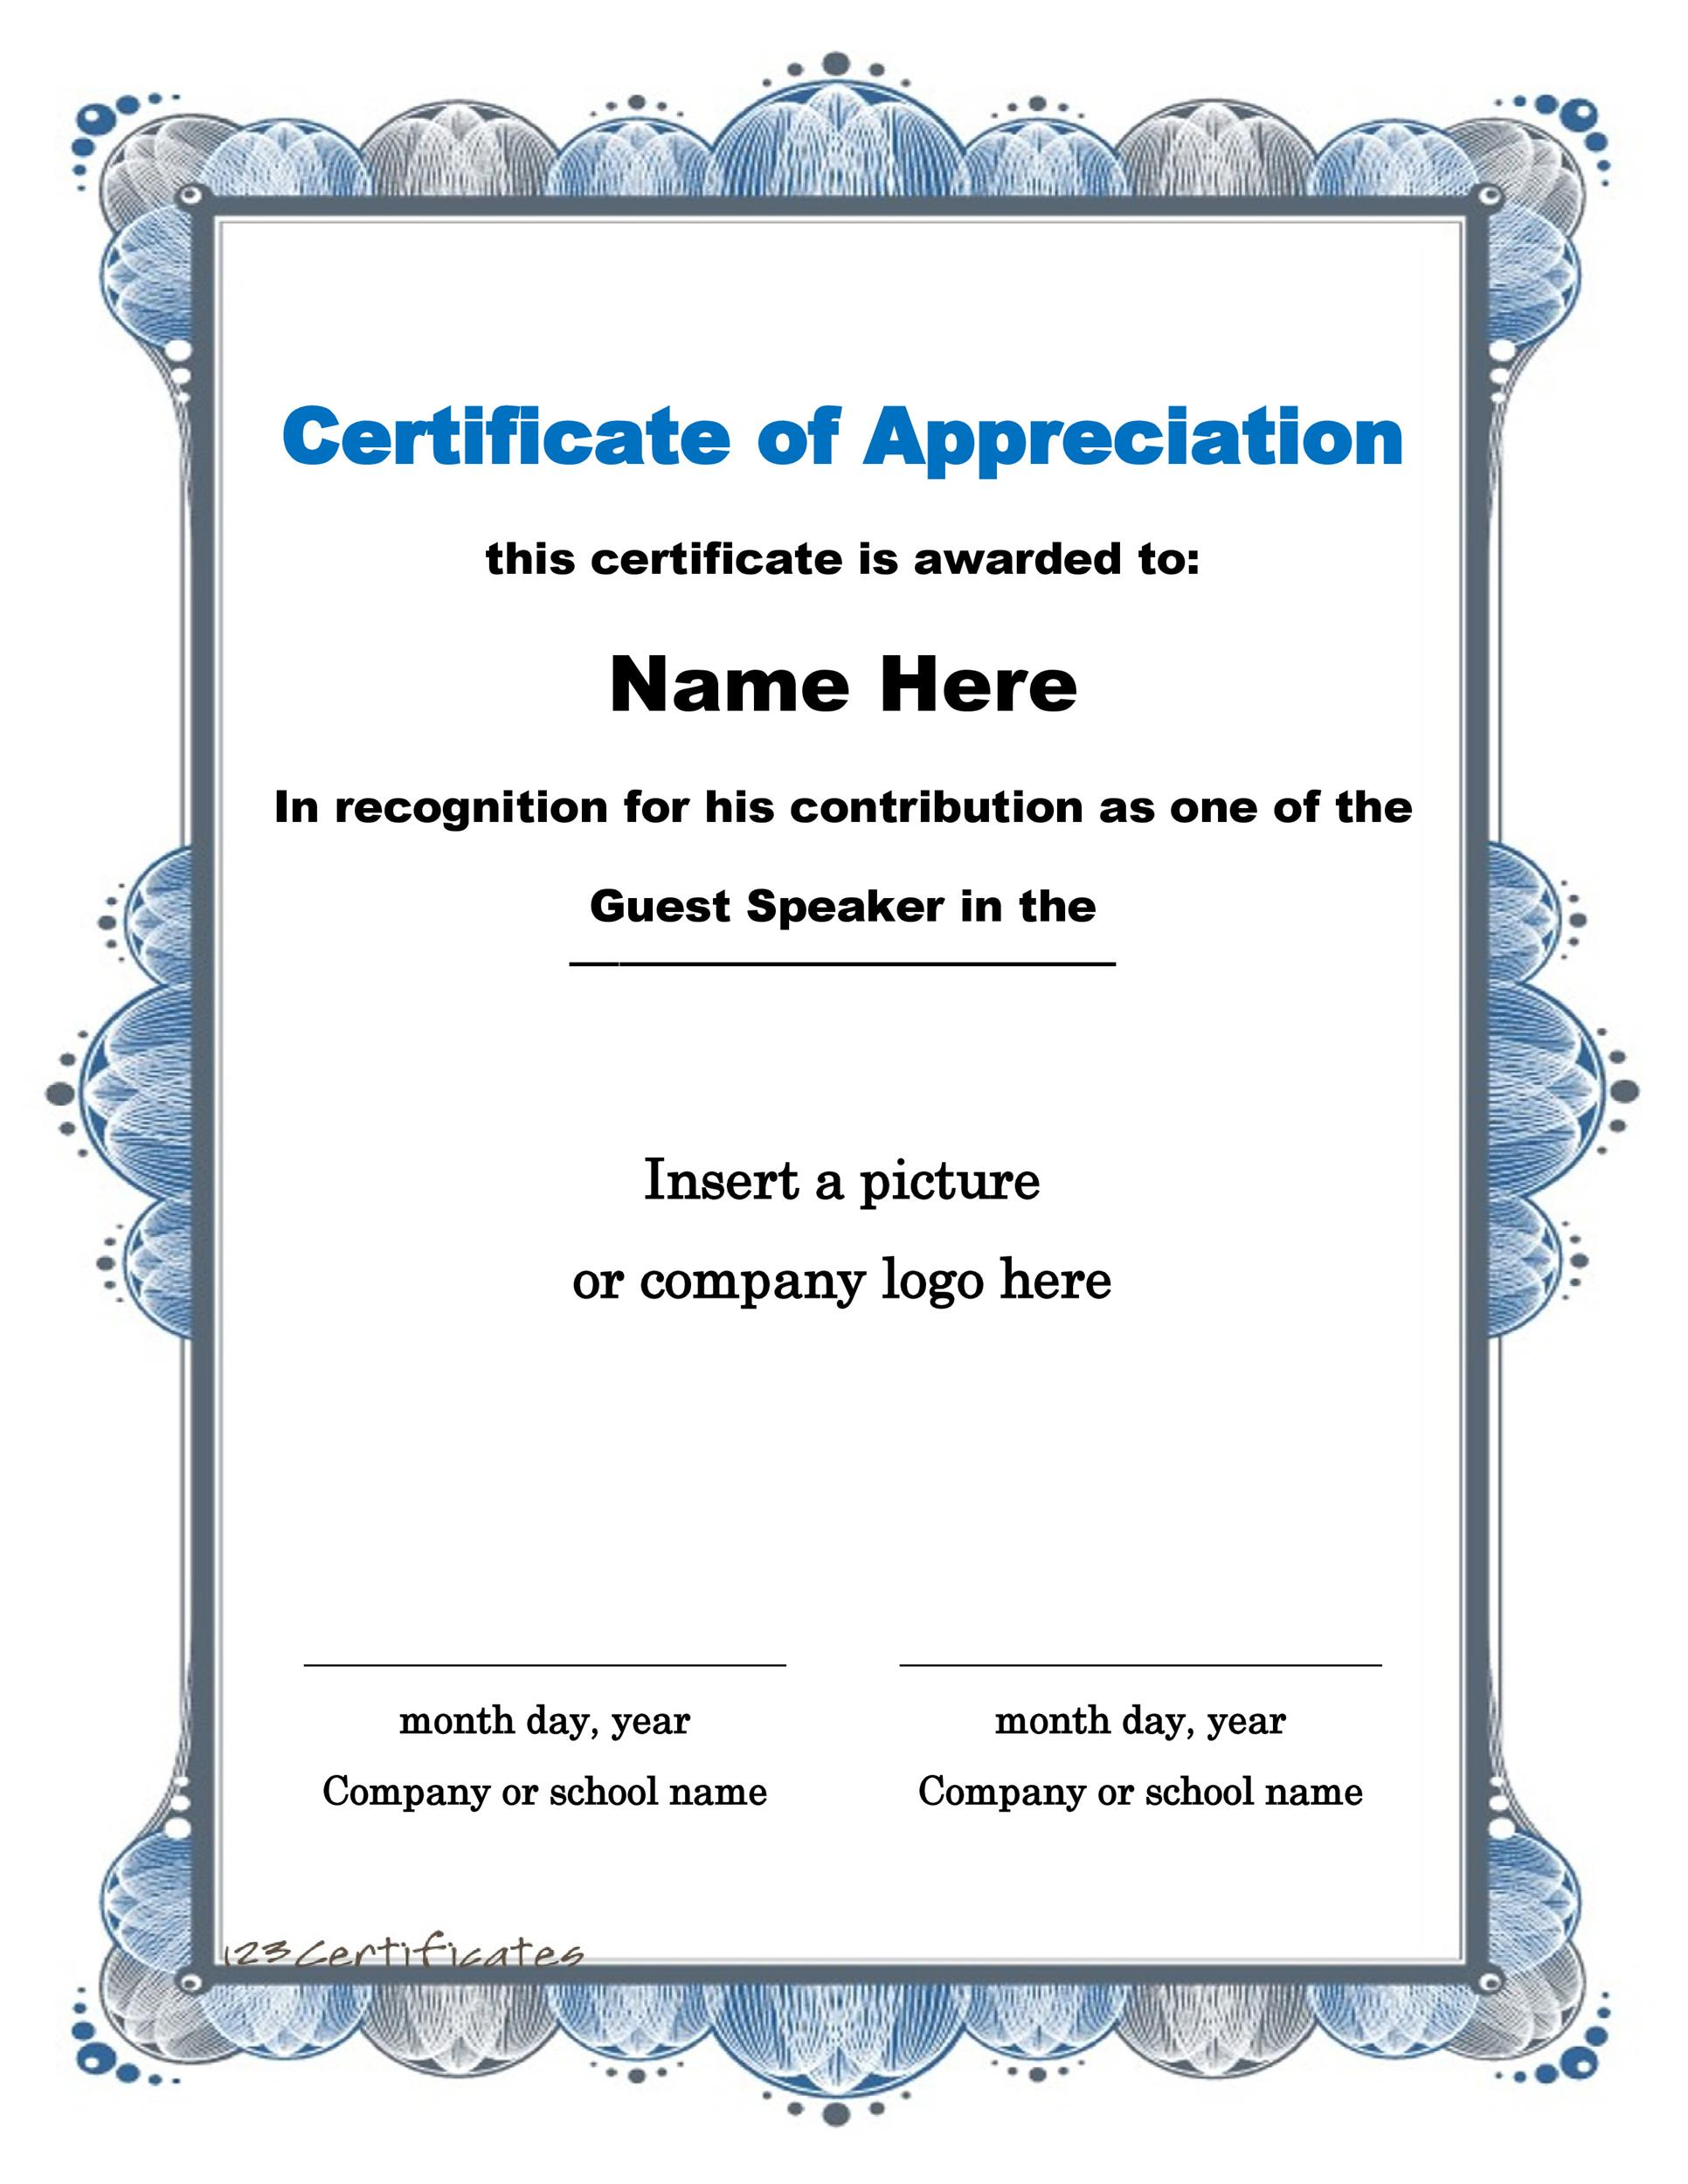 Free certificate of appreciation templates and letters 30 free certificate of appreciation templates and letters yadclub Image collections